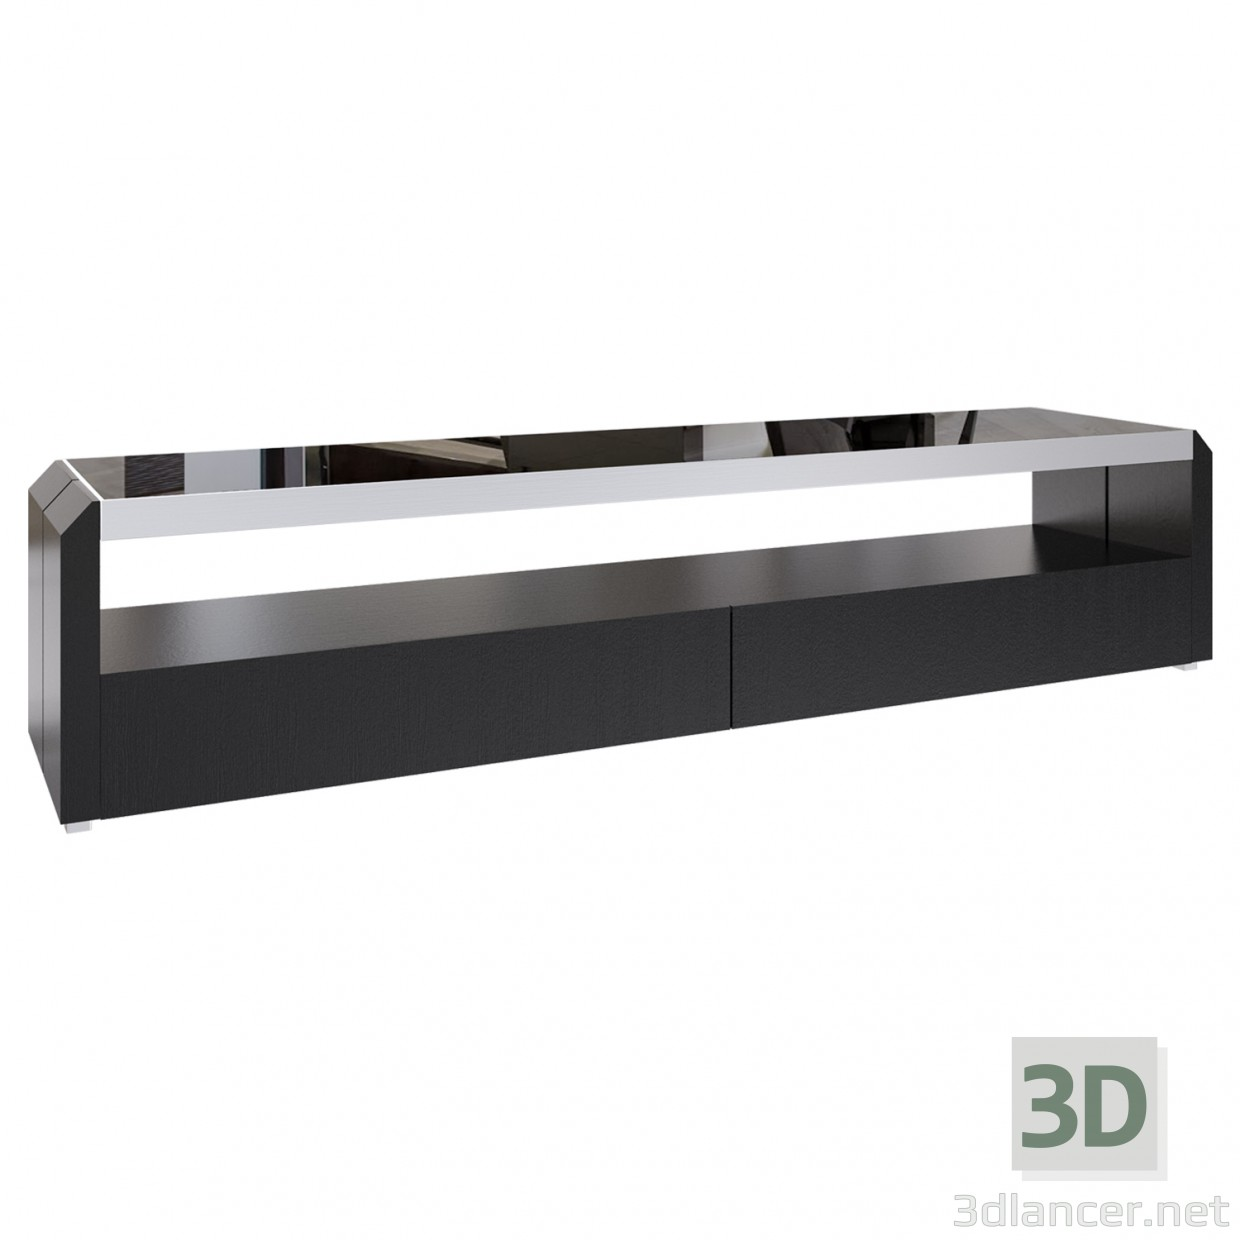 3d modell tv tische techno id 15758. Black Bedroom Furniture Sets. Home Design Ideas